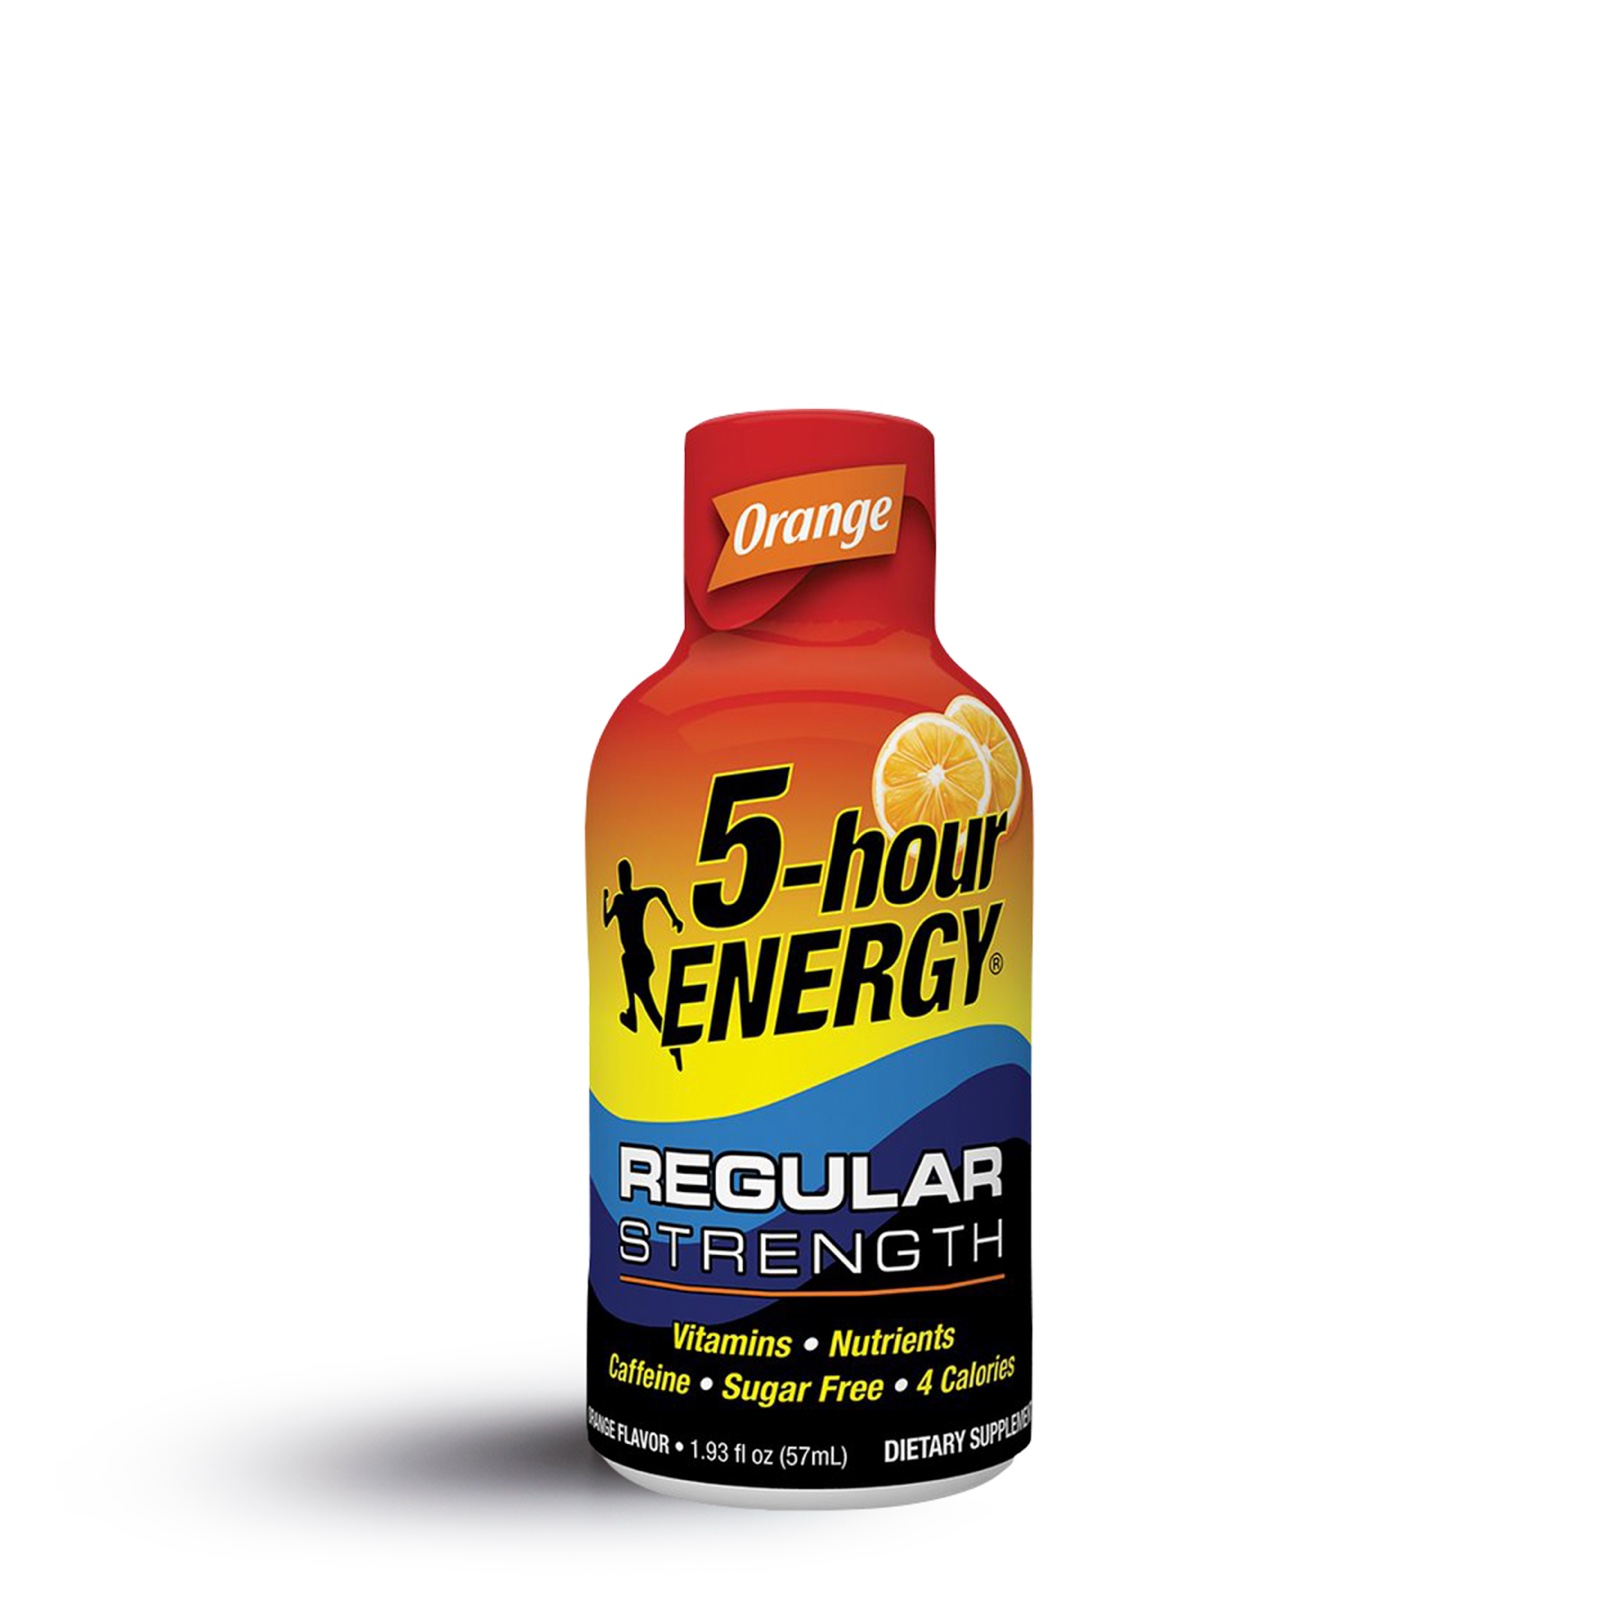 A single 5-hour energy shot in orange flavor.